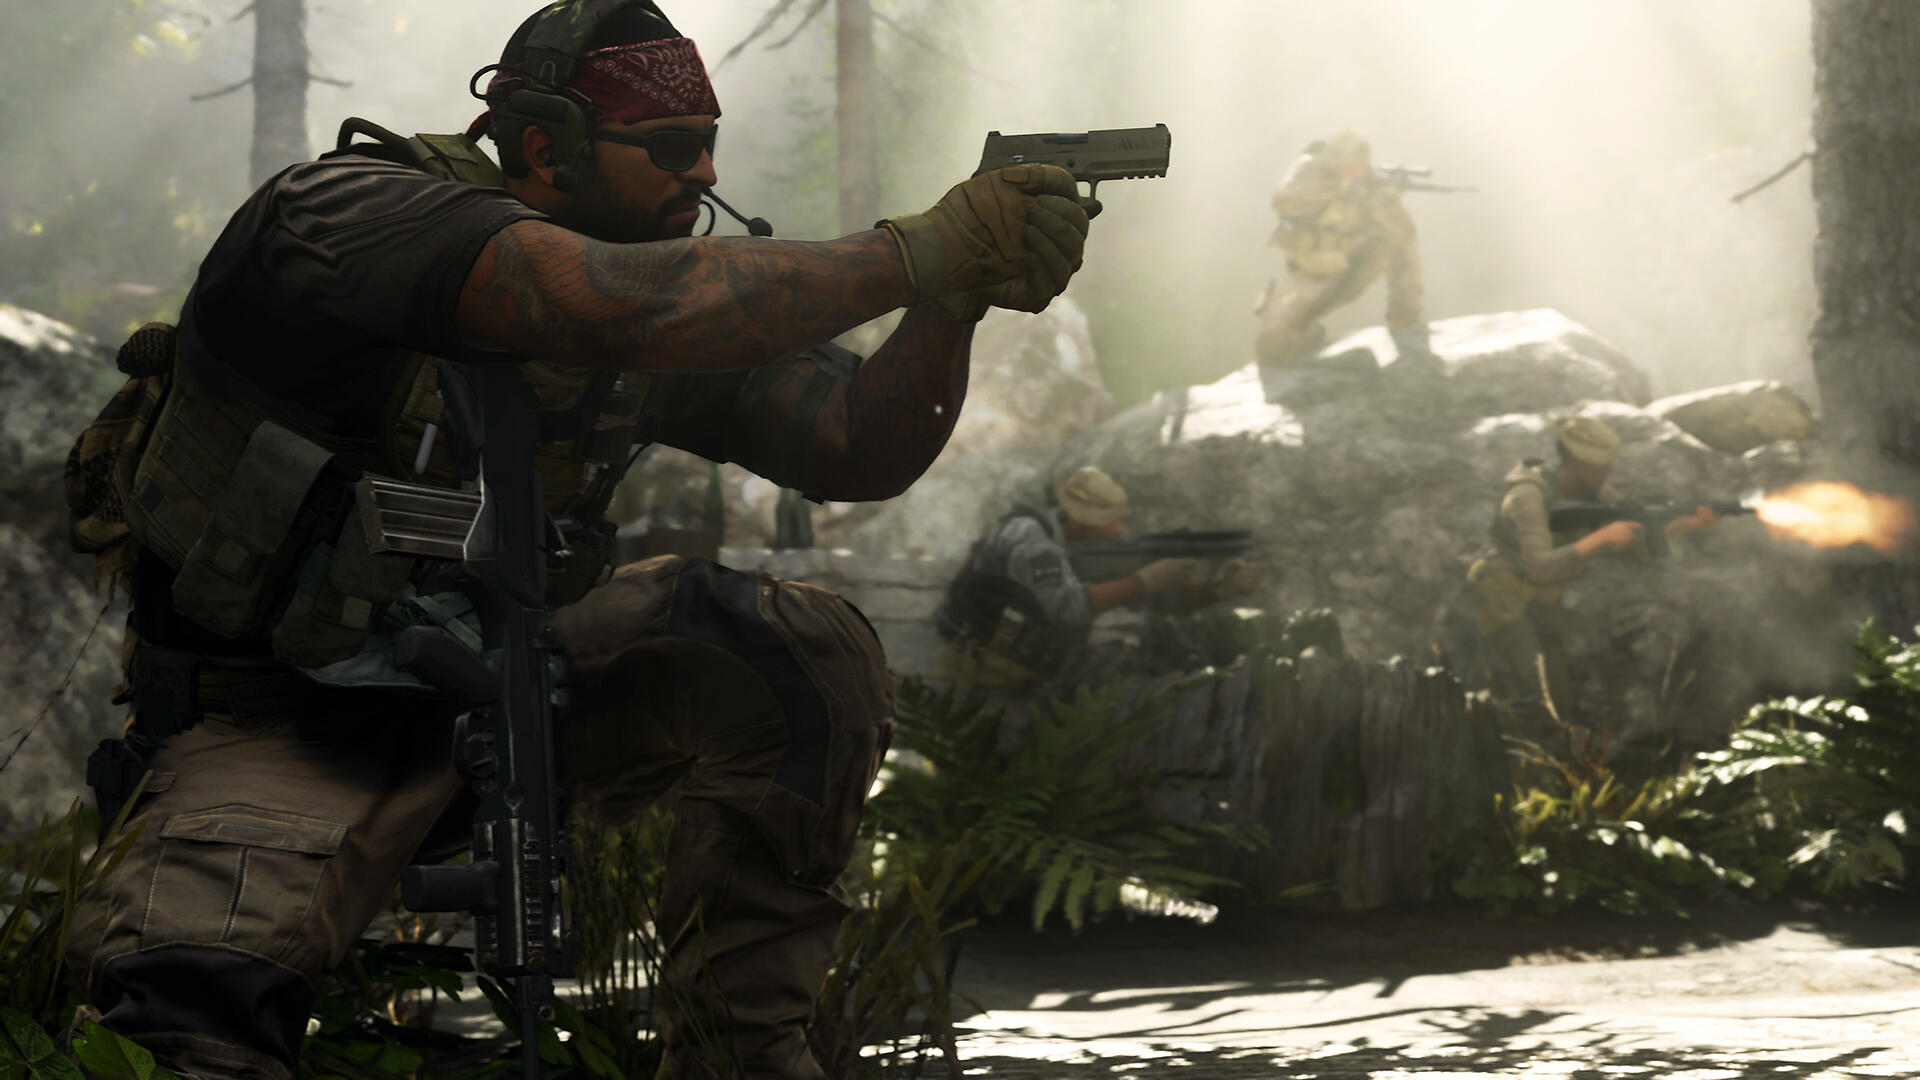 Call of Duty: Modern Warfare Won't Be Going Too Crazy With Colorful Cosmetics, Say Devs